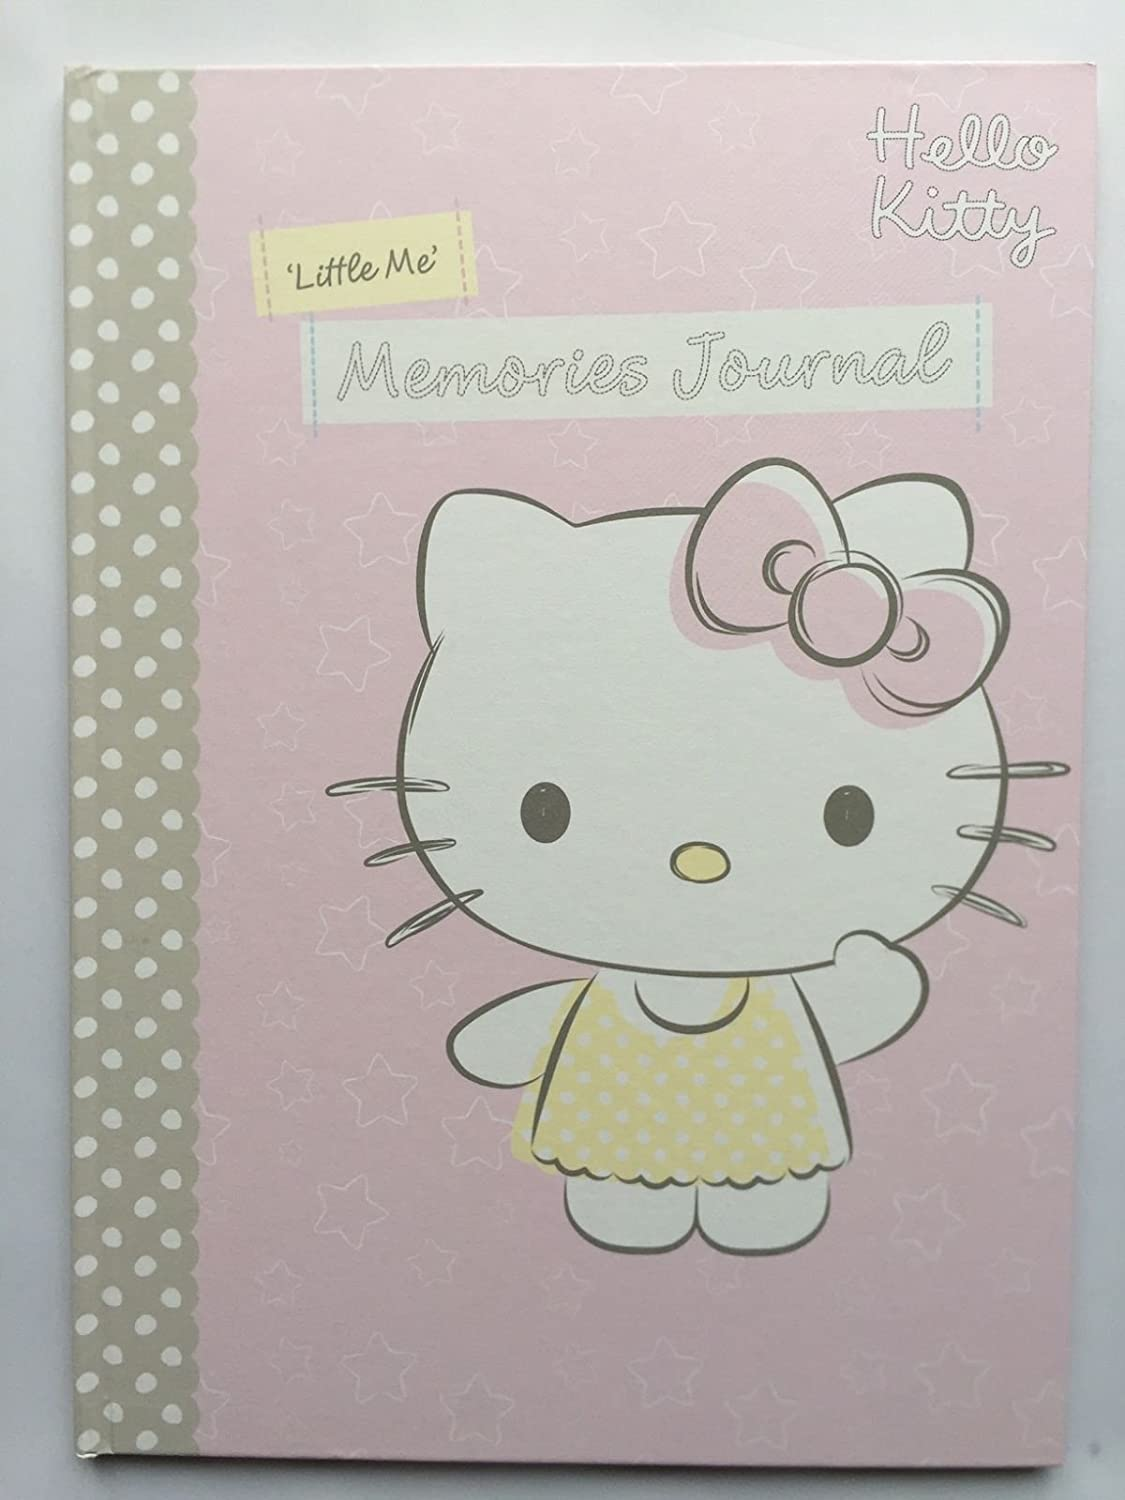 Hallmark Hello Kitty New Baby Keepsake Record Book Christening Gift Memory Journal